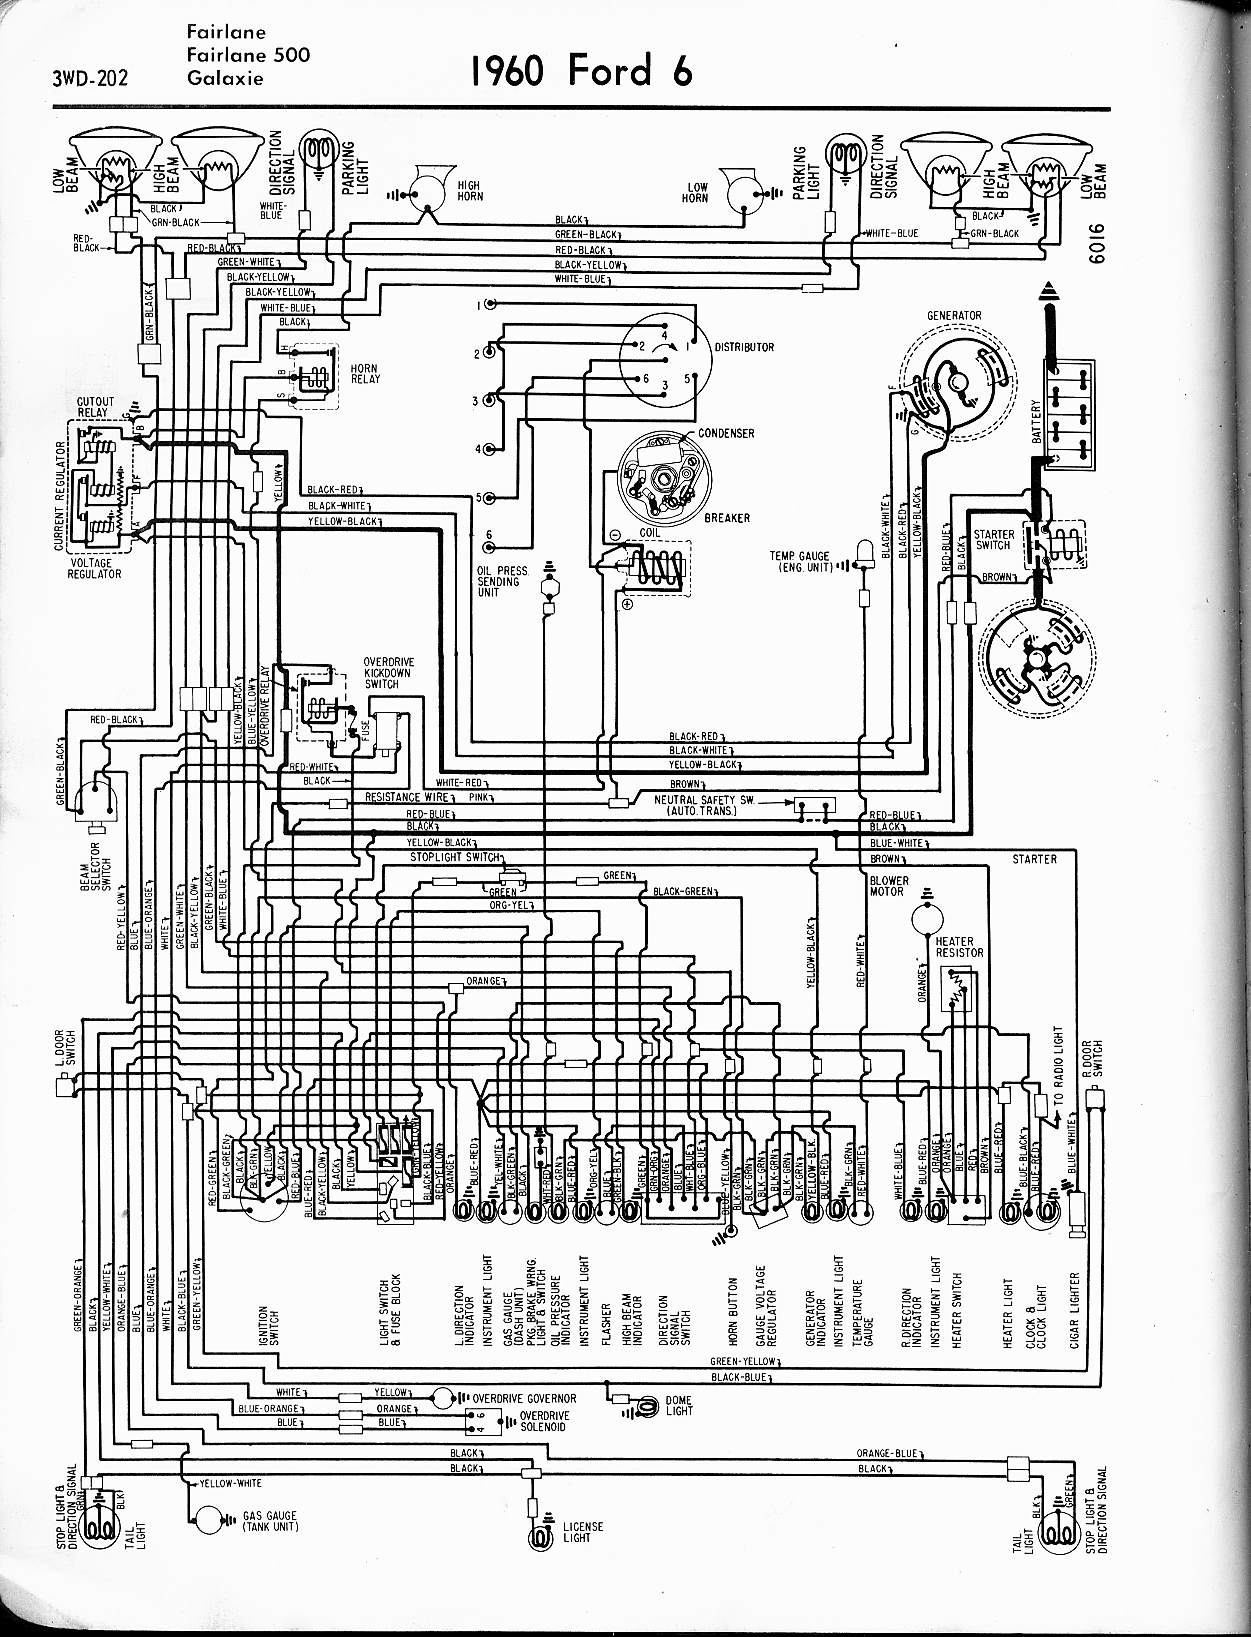 MWire5765 202 wiring diagram for 1959 ford f100 the wiring diagram 1959 ford f100 wiring harness at bayanpartner.co